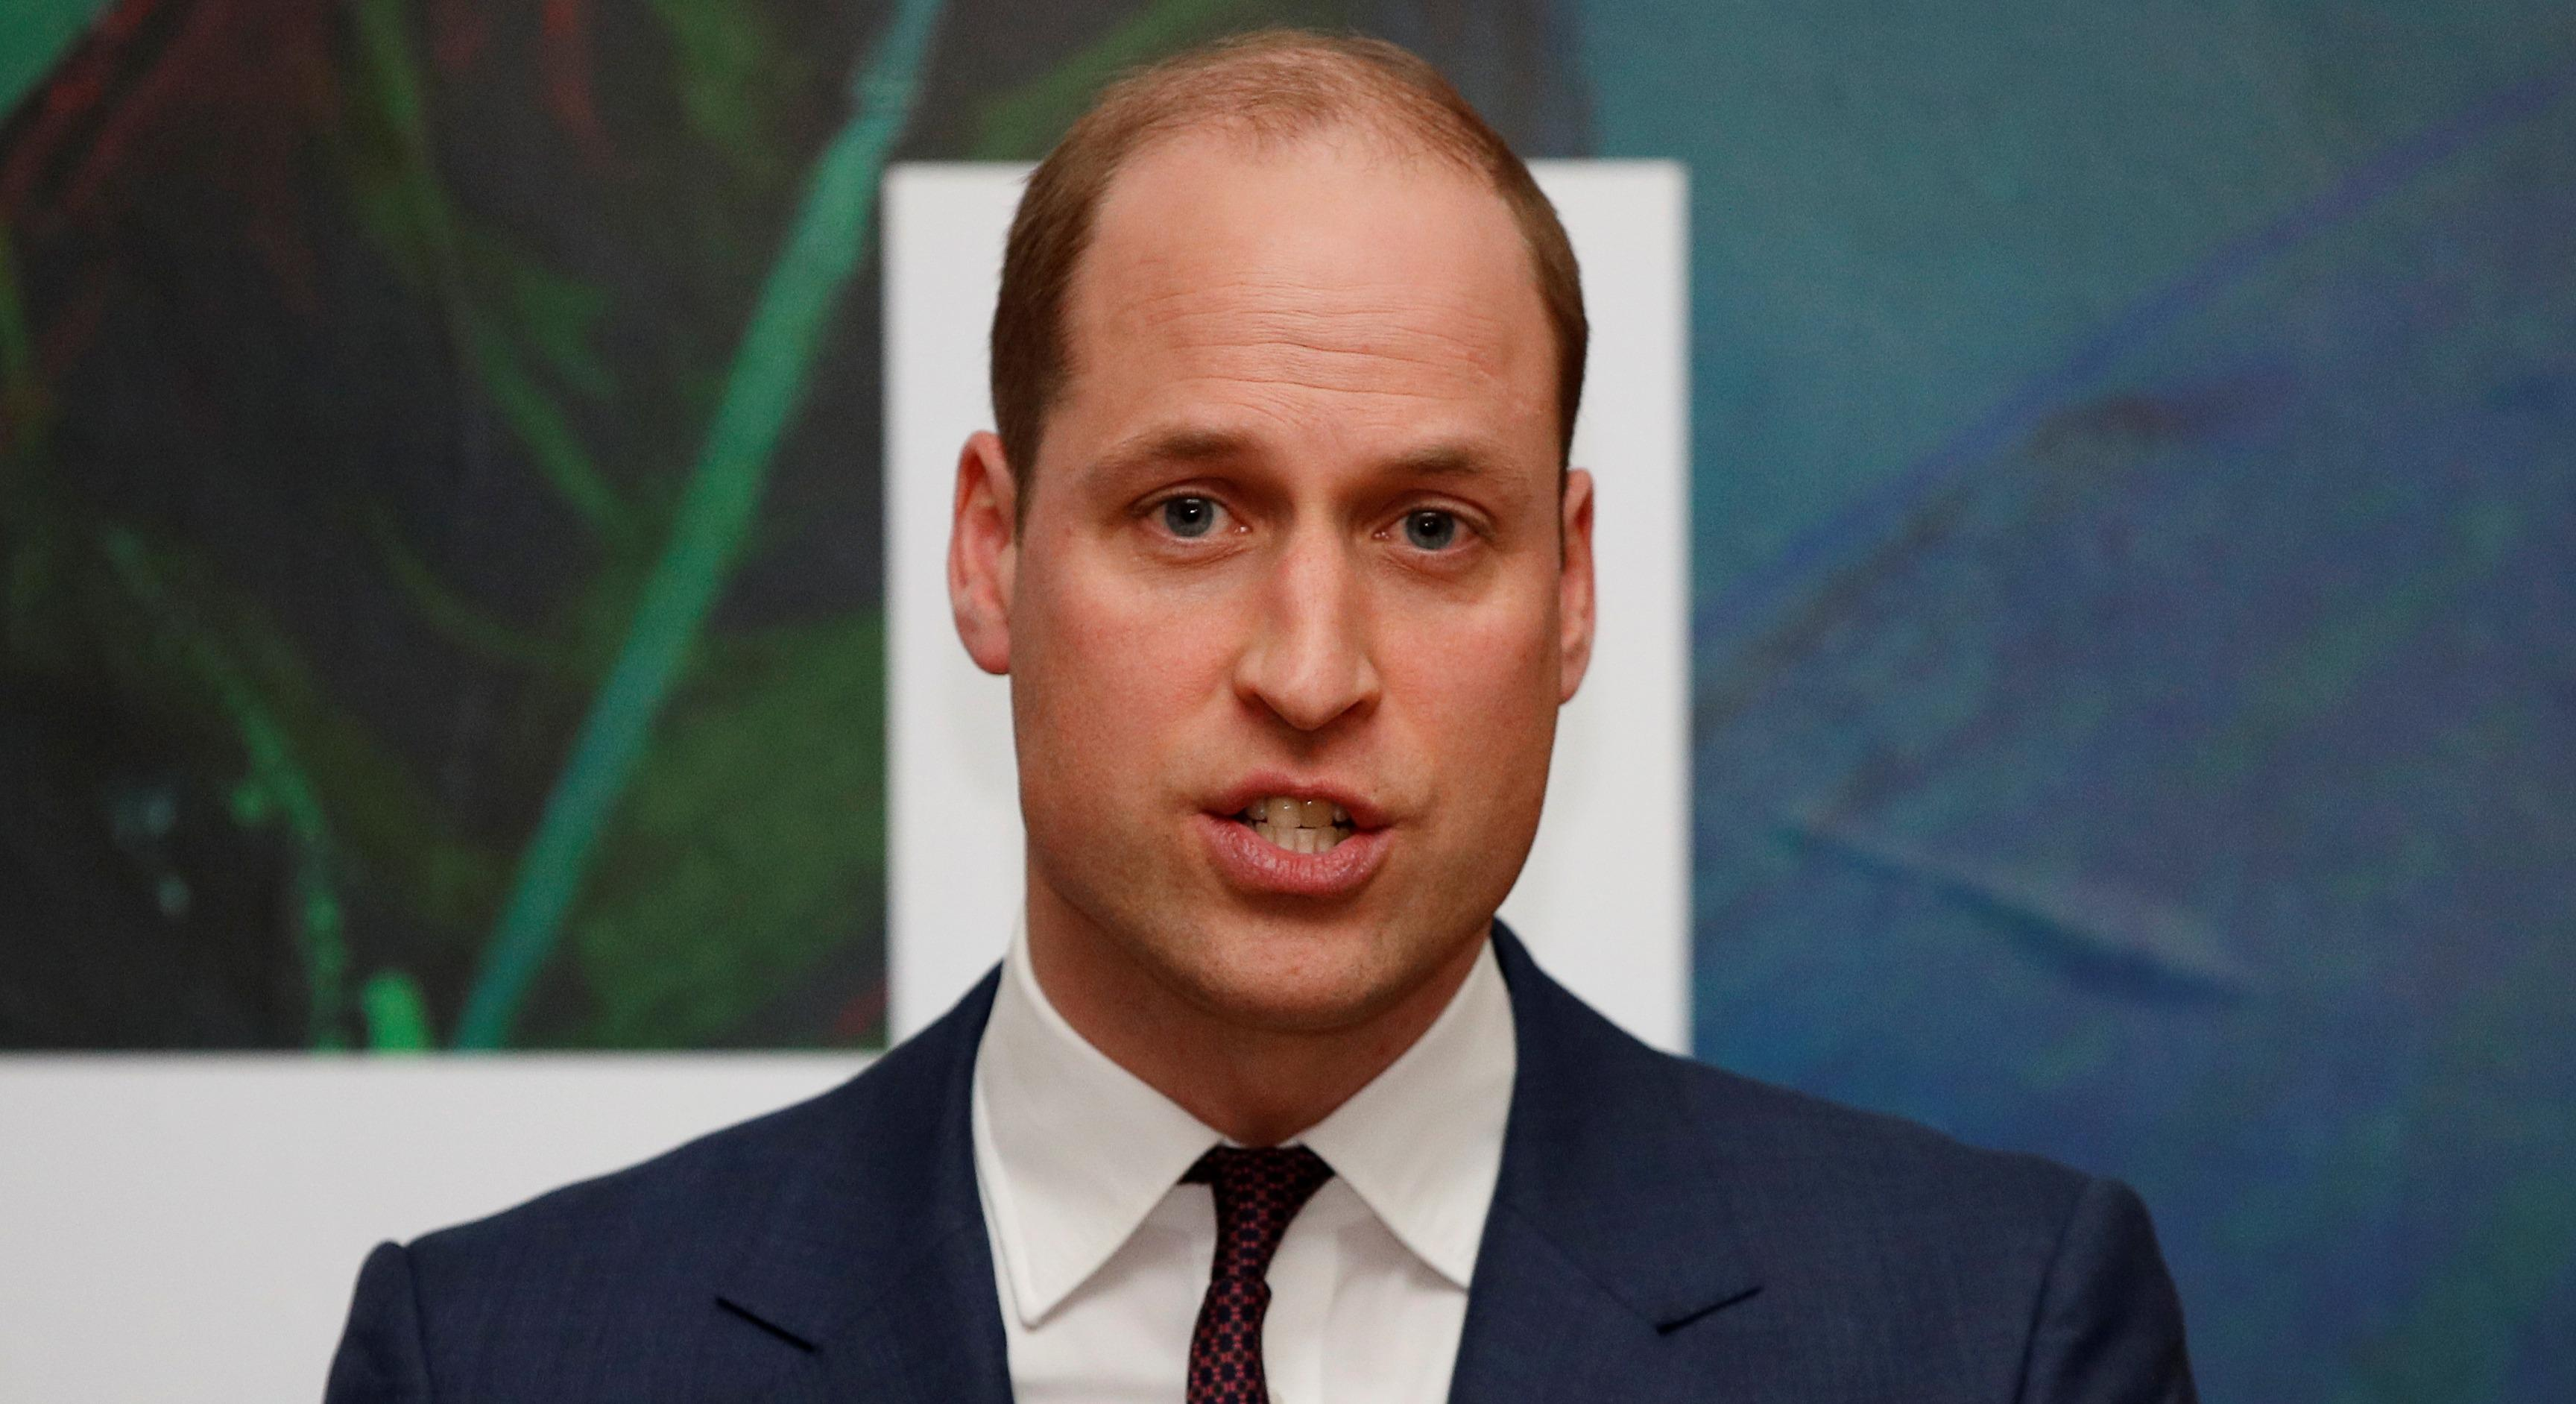 Prince William encouraged the Archbishop of Canterbury to seek help for depression